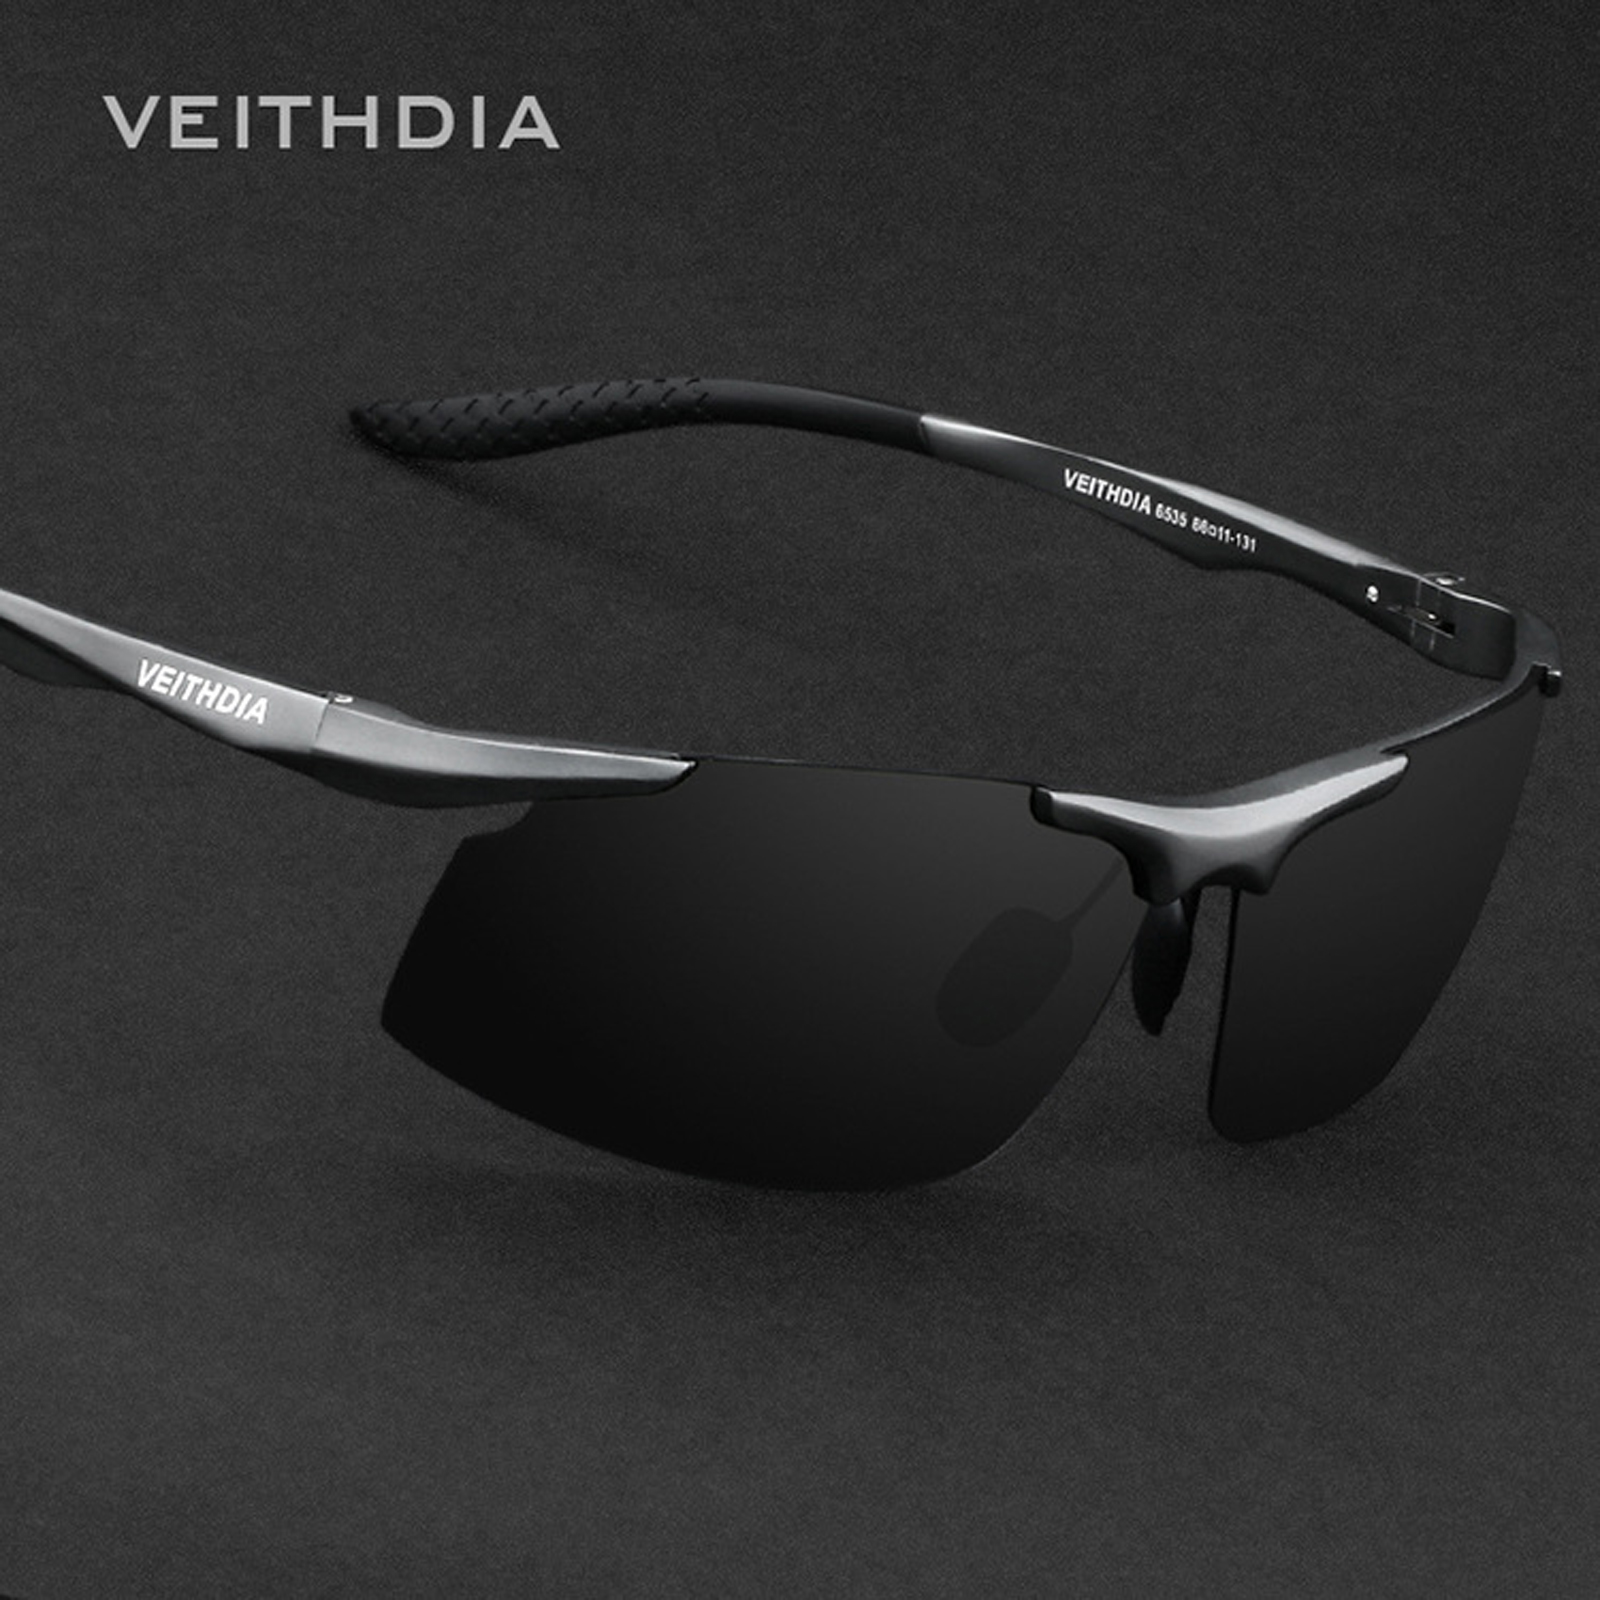 V6535 VEITHDIA Brand Aluminum Polarized Sunglasses Men Sports Sun Glasses Driving Mirror Eyewear Accessories For Men